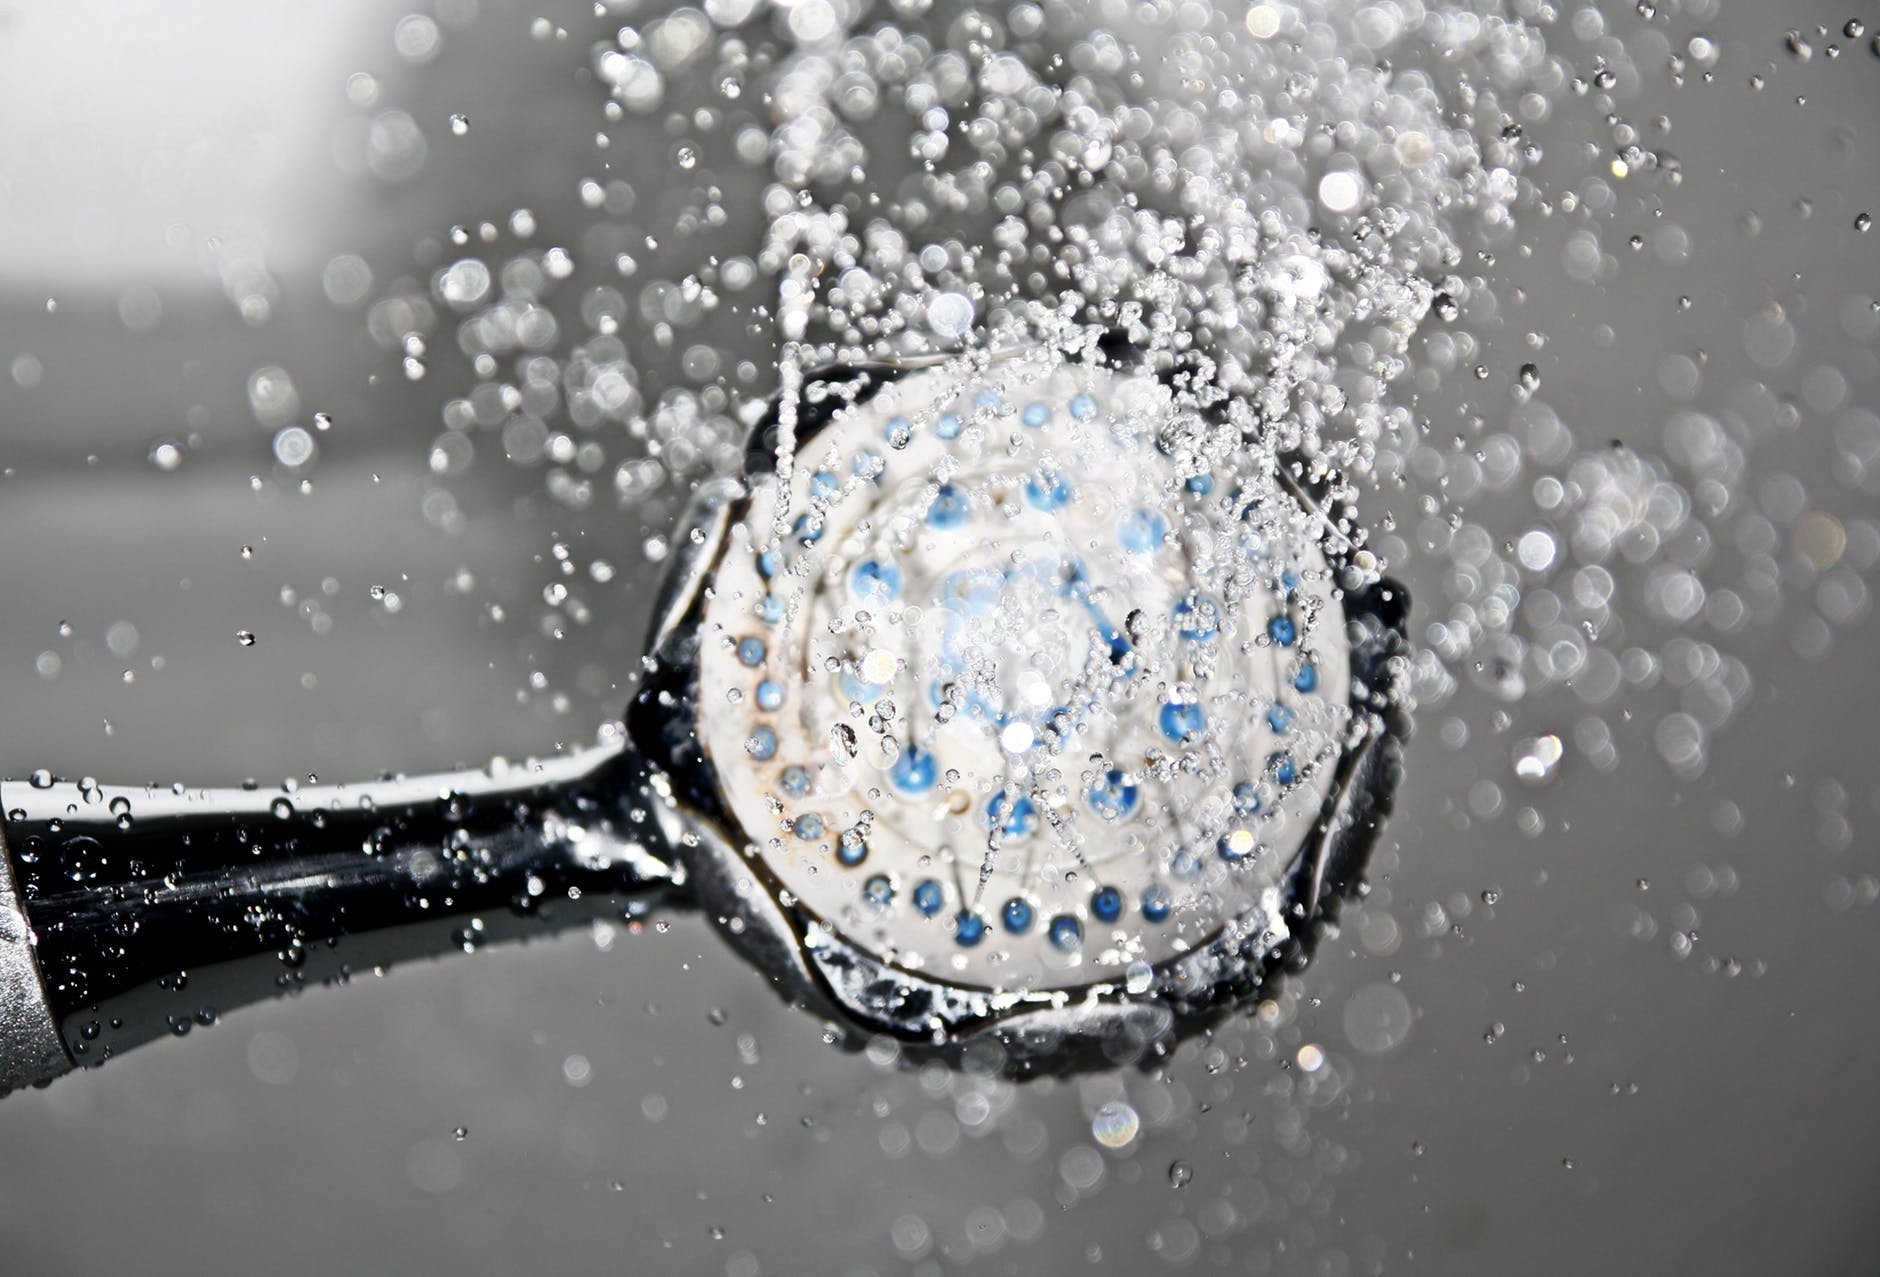 save money on utility bills - black shower head switched on